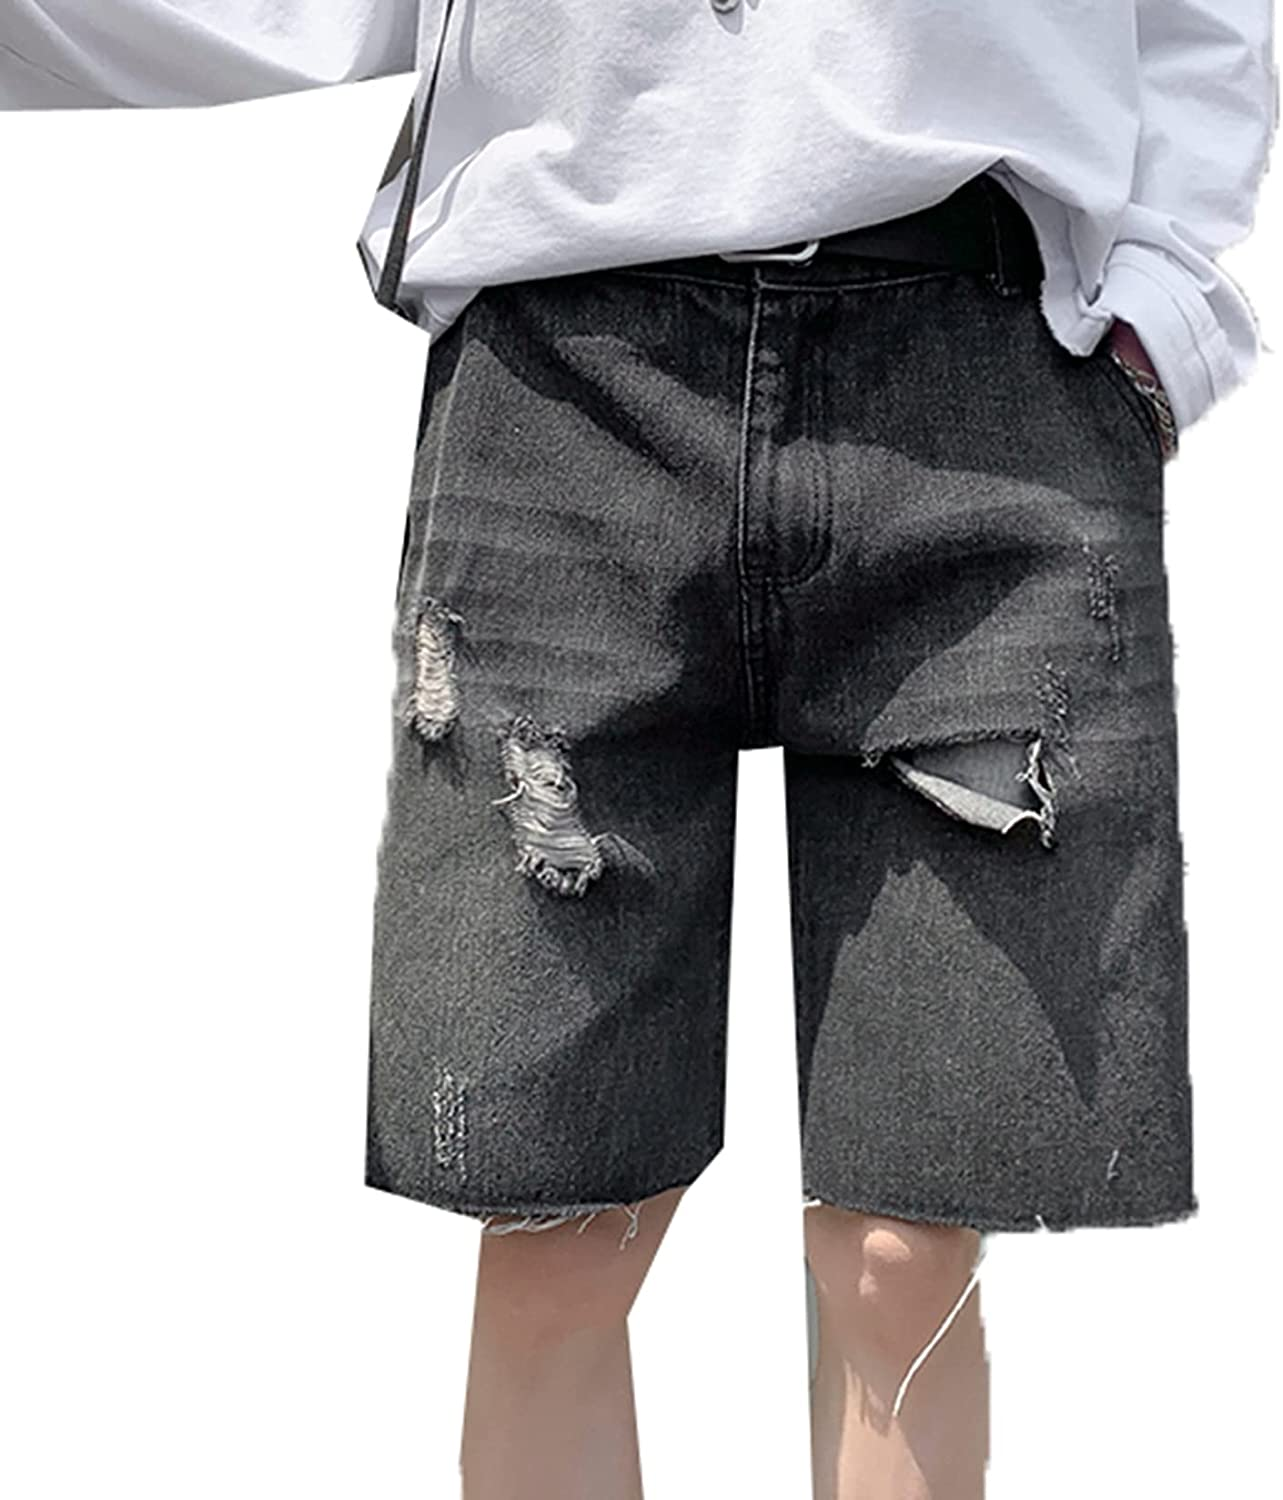 Generic2 Men's Summer Jeans Shorts Ripped Hole Denim Bottoms Wild Streetwear Style Durable Half-Length Jeans